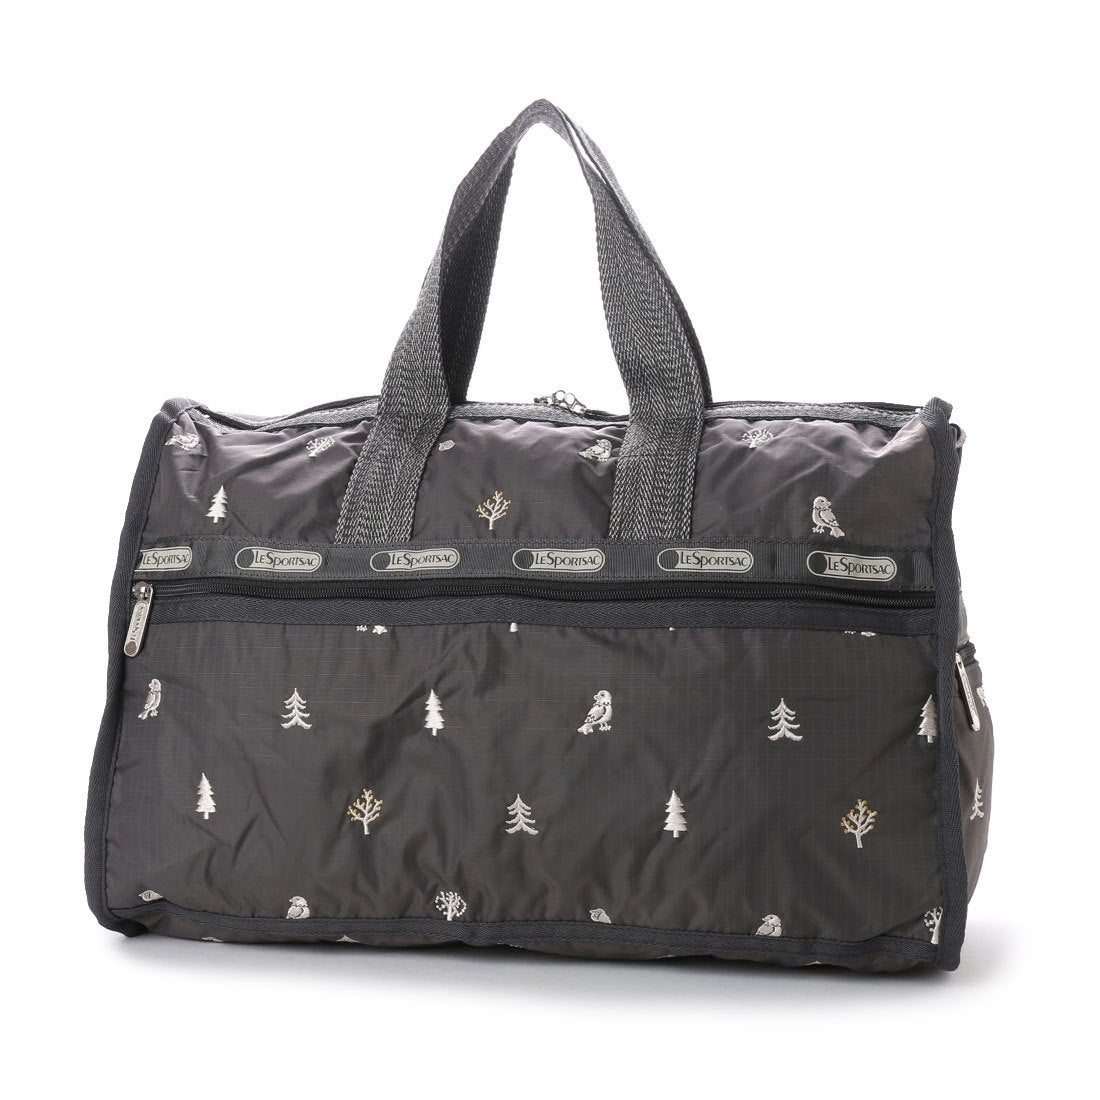 【SALE 30%OFF】レスポートサック LeSportsac MEDIAM WEEKENDER (WINTER FOREST) レディース